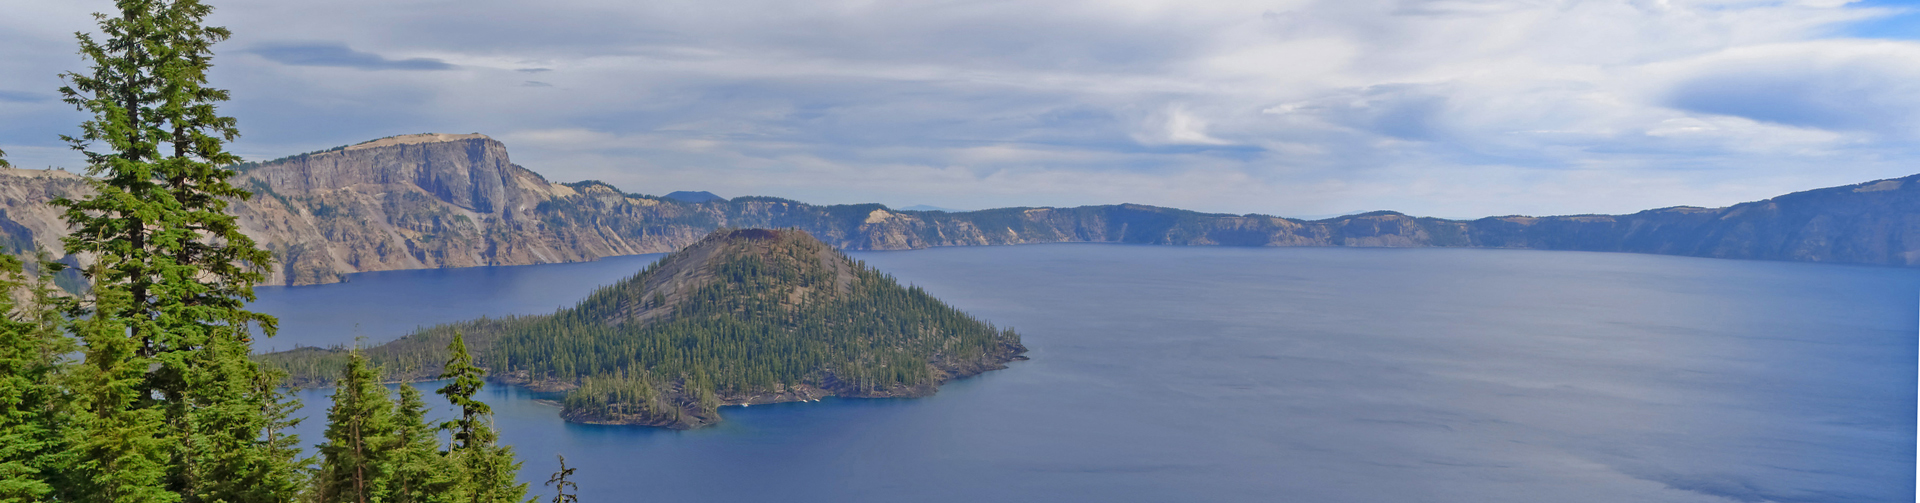 craterlake_ps